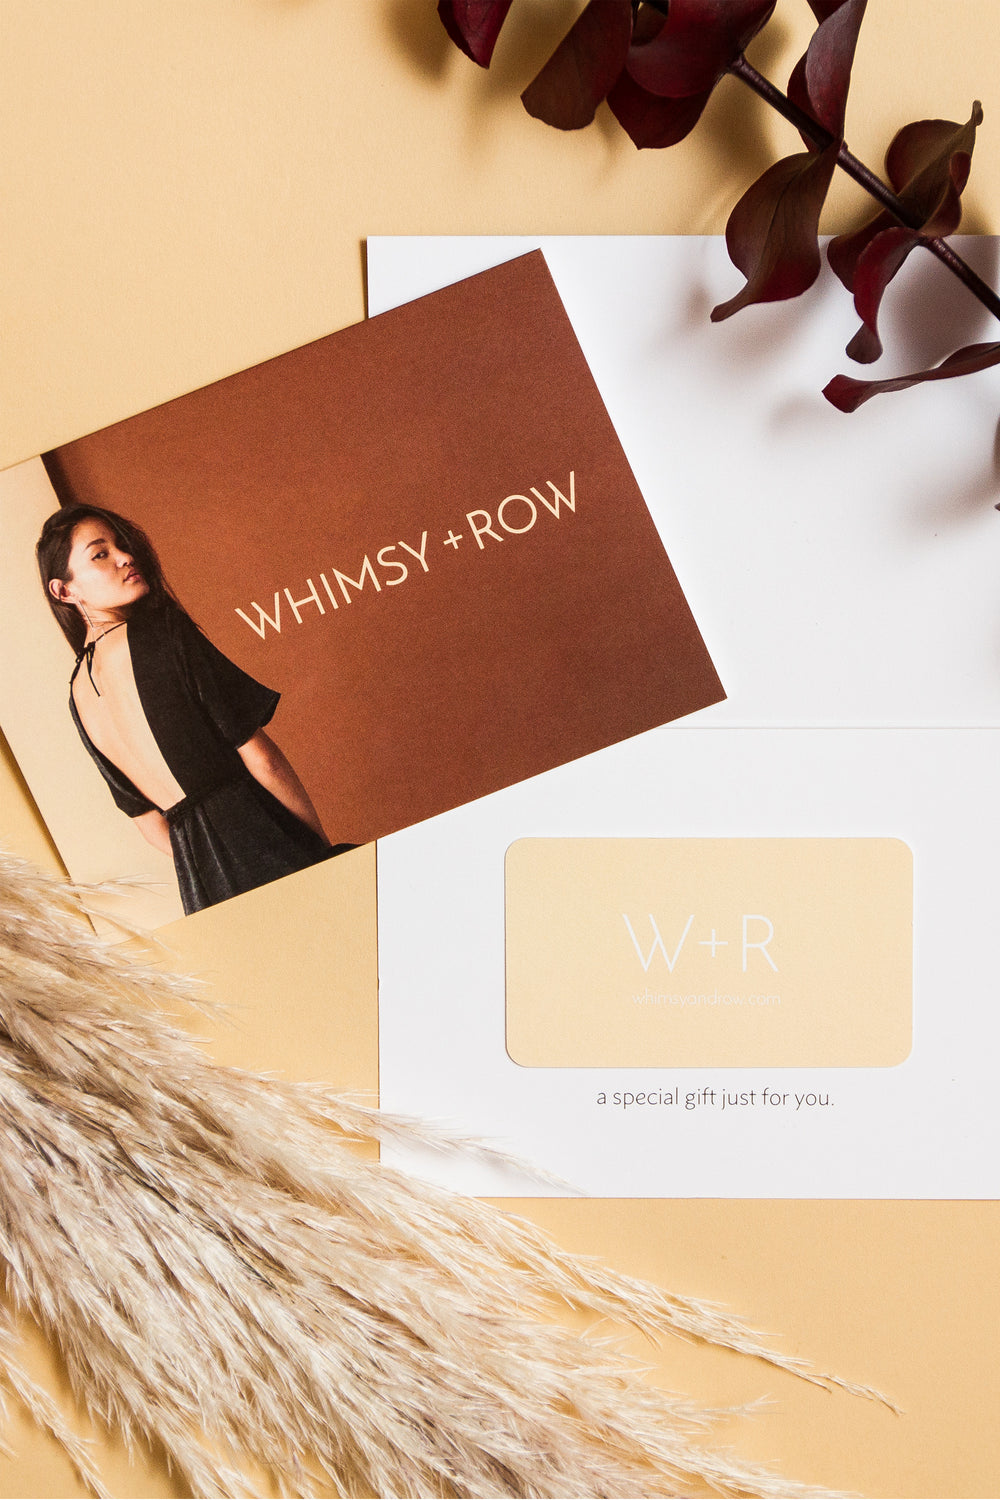 Whimsy + Row E-Gift Card - Whimsy & Row